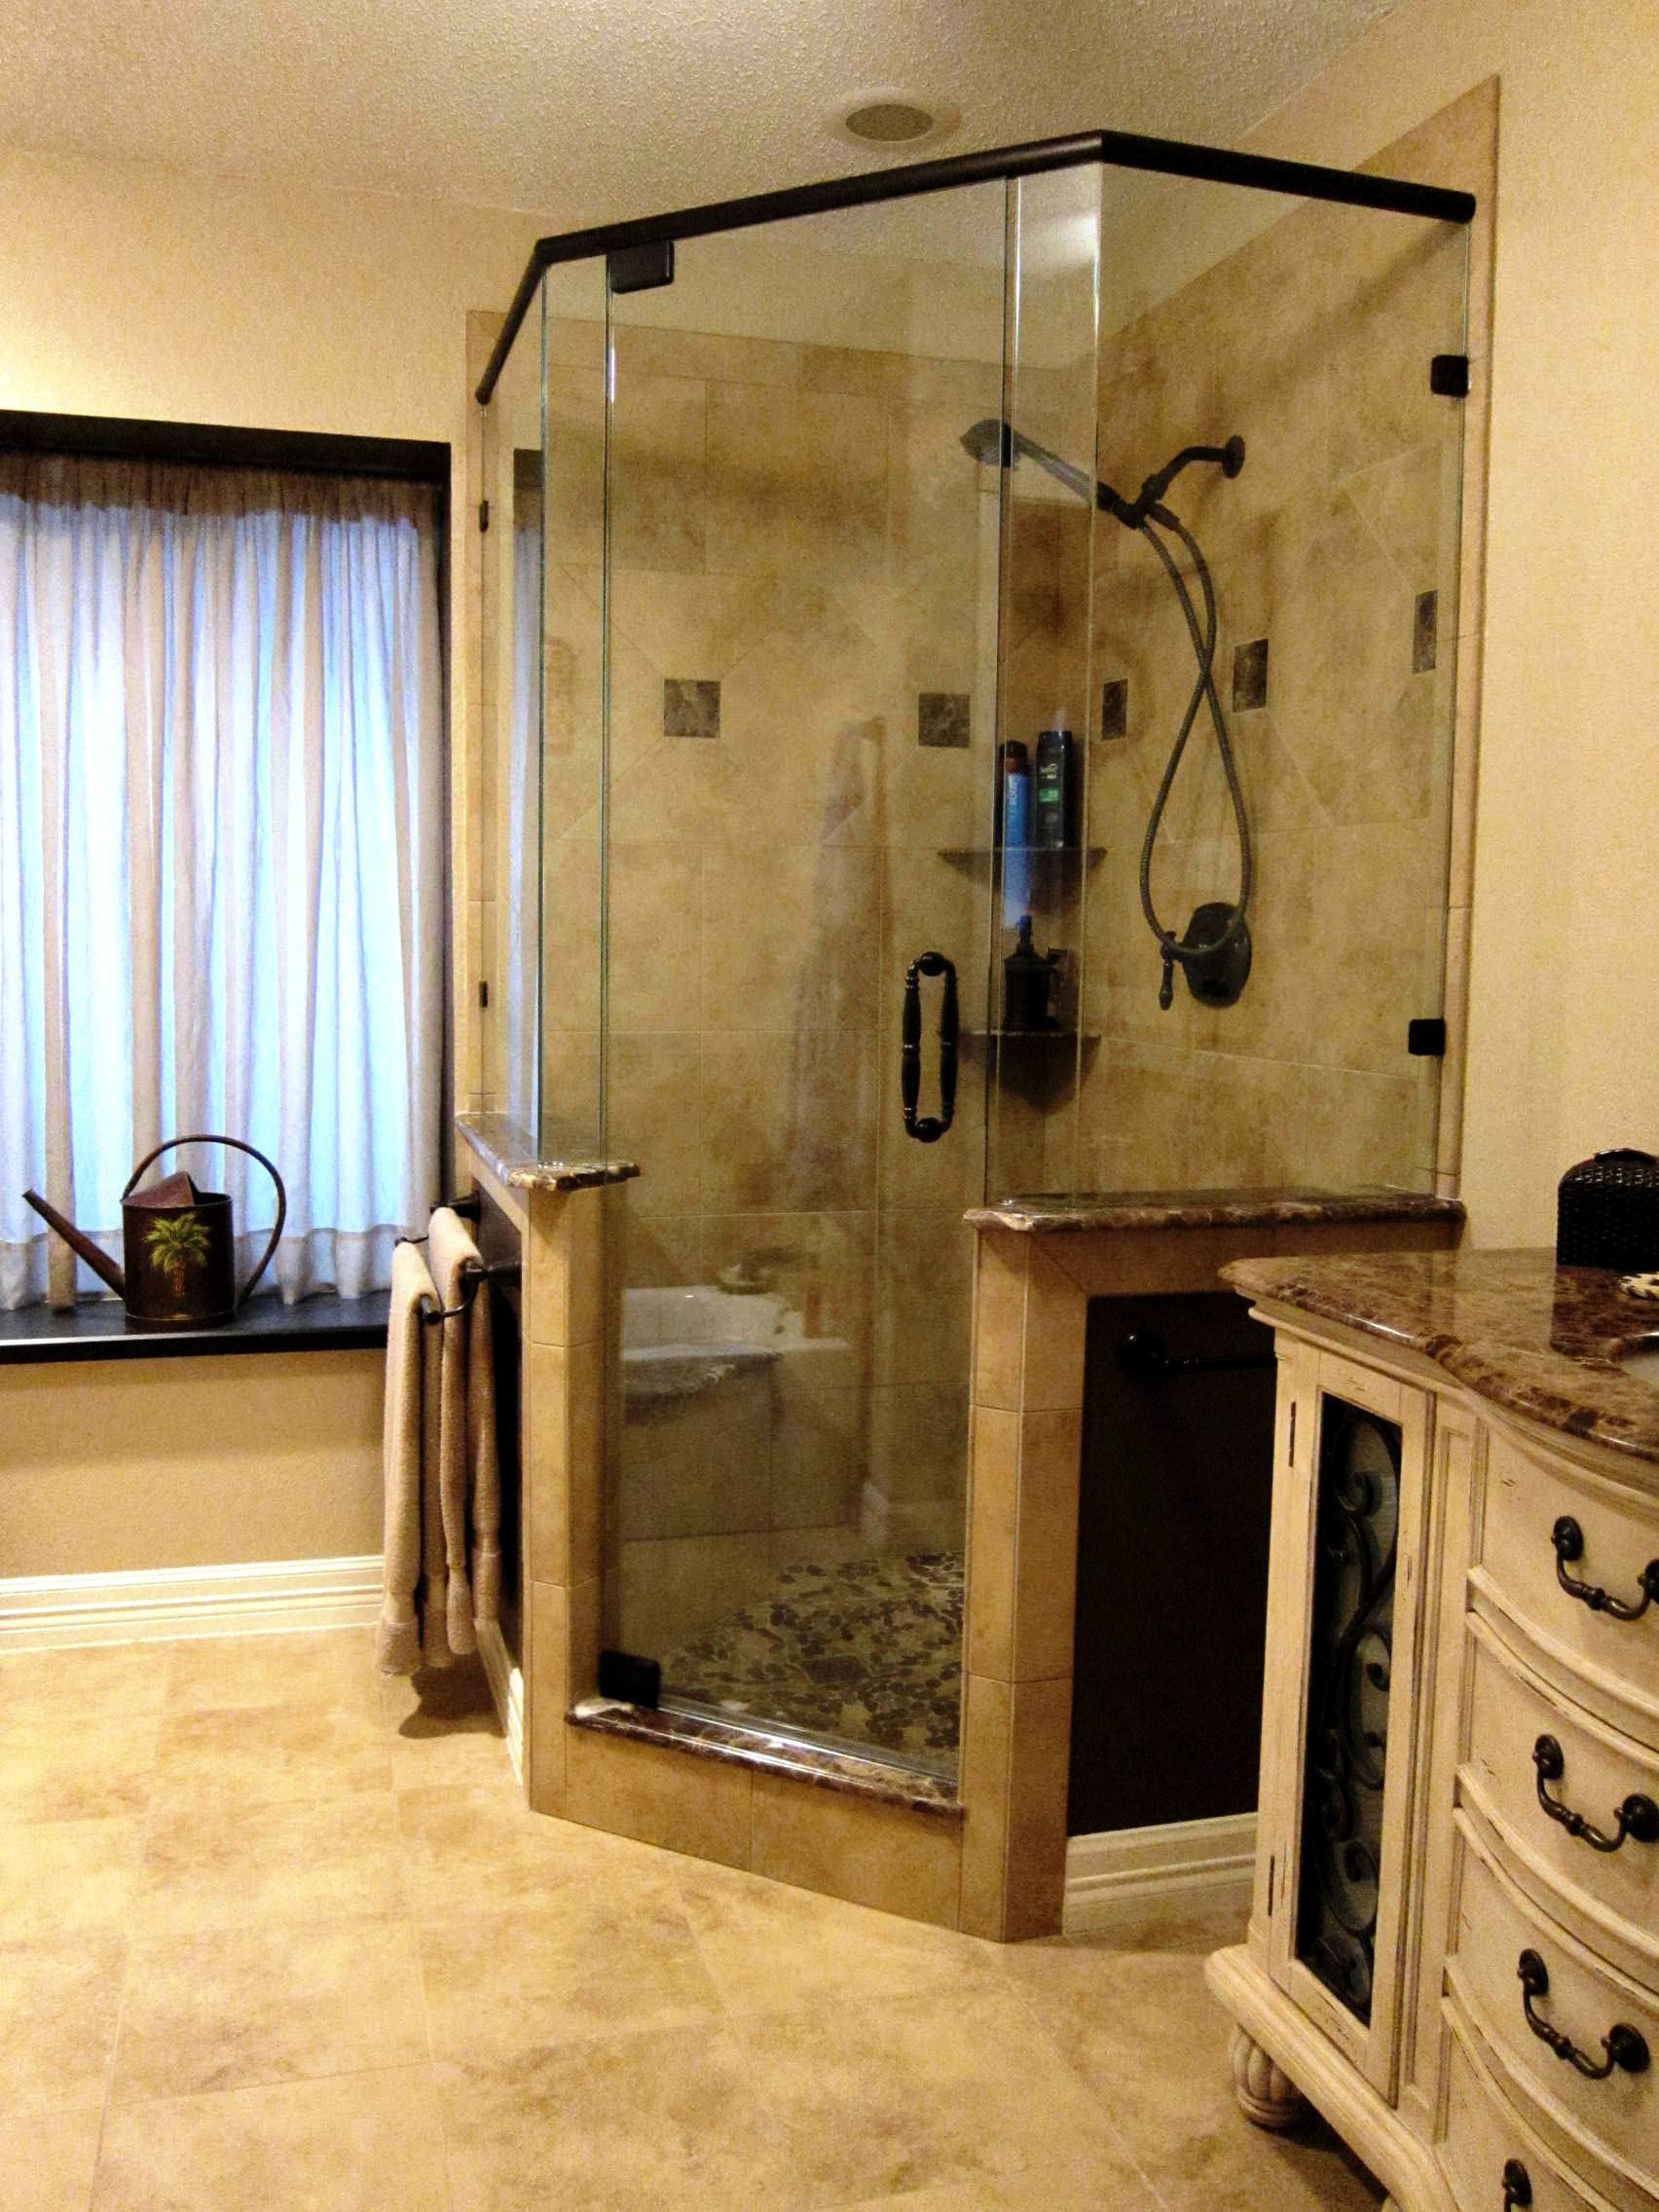 Typical Bathroom Remodel Cost in Texas by The Floor Barn ...